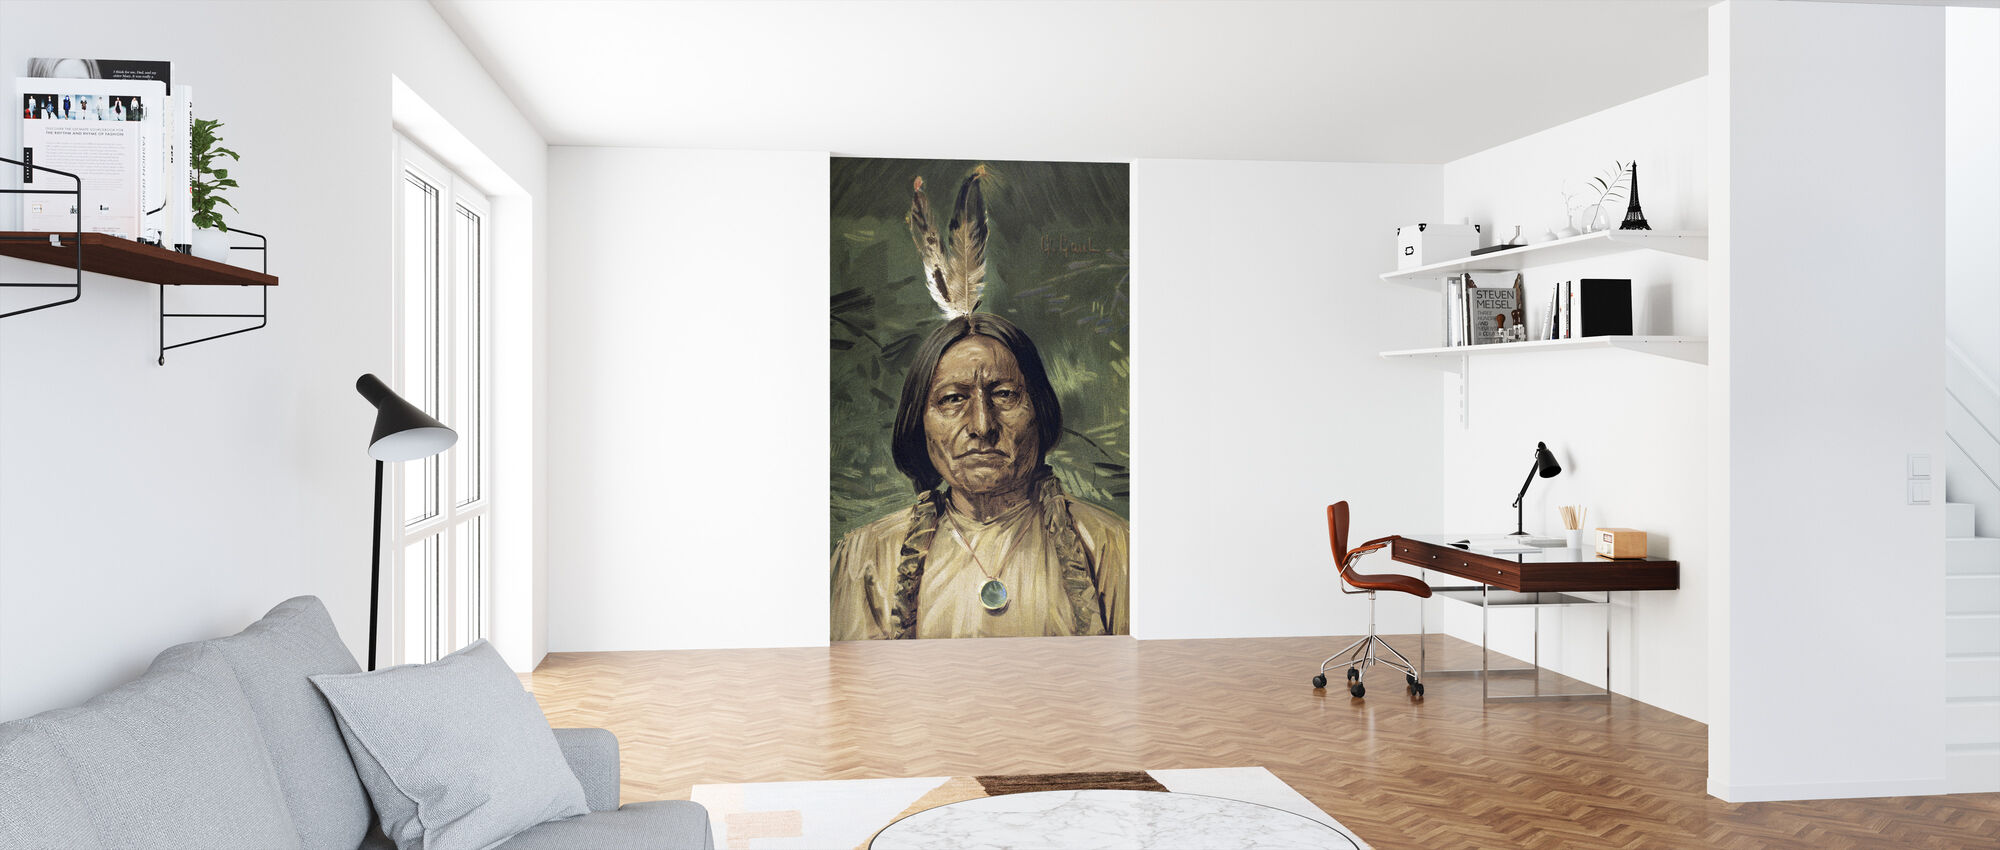 Chief Sitting Bull - Wallpaper - Office